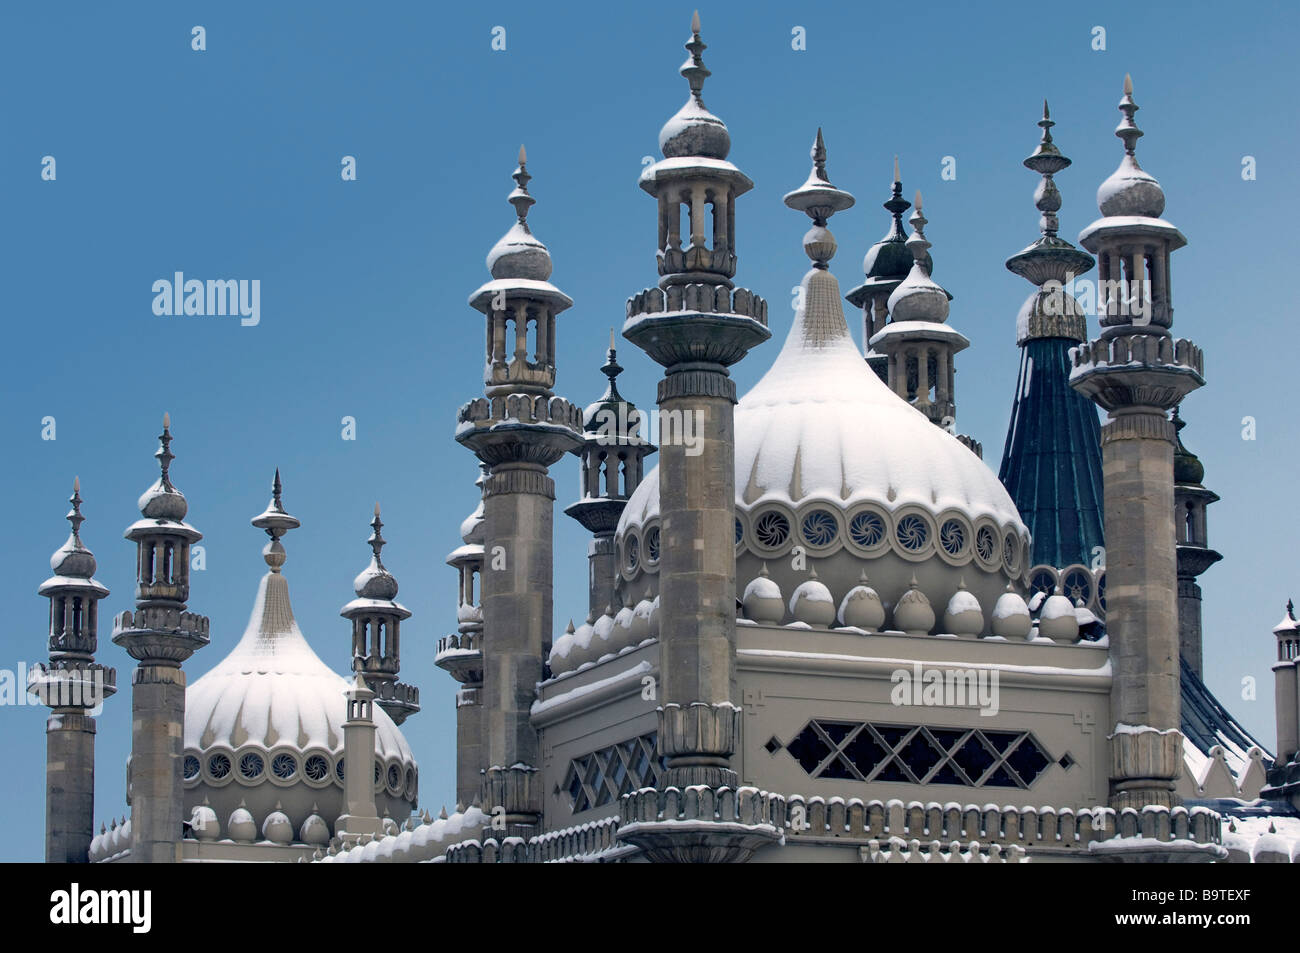 Snow covers the Domes and minarets of the Prince Regents Palace the Brighton Royal Pavilion East Sussex UK Stock Photo